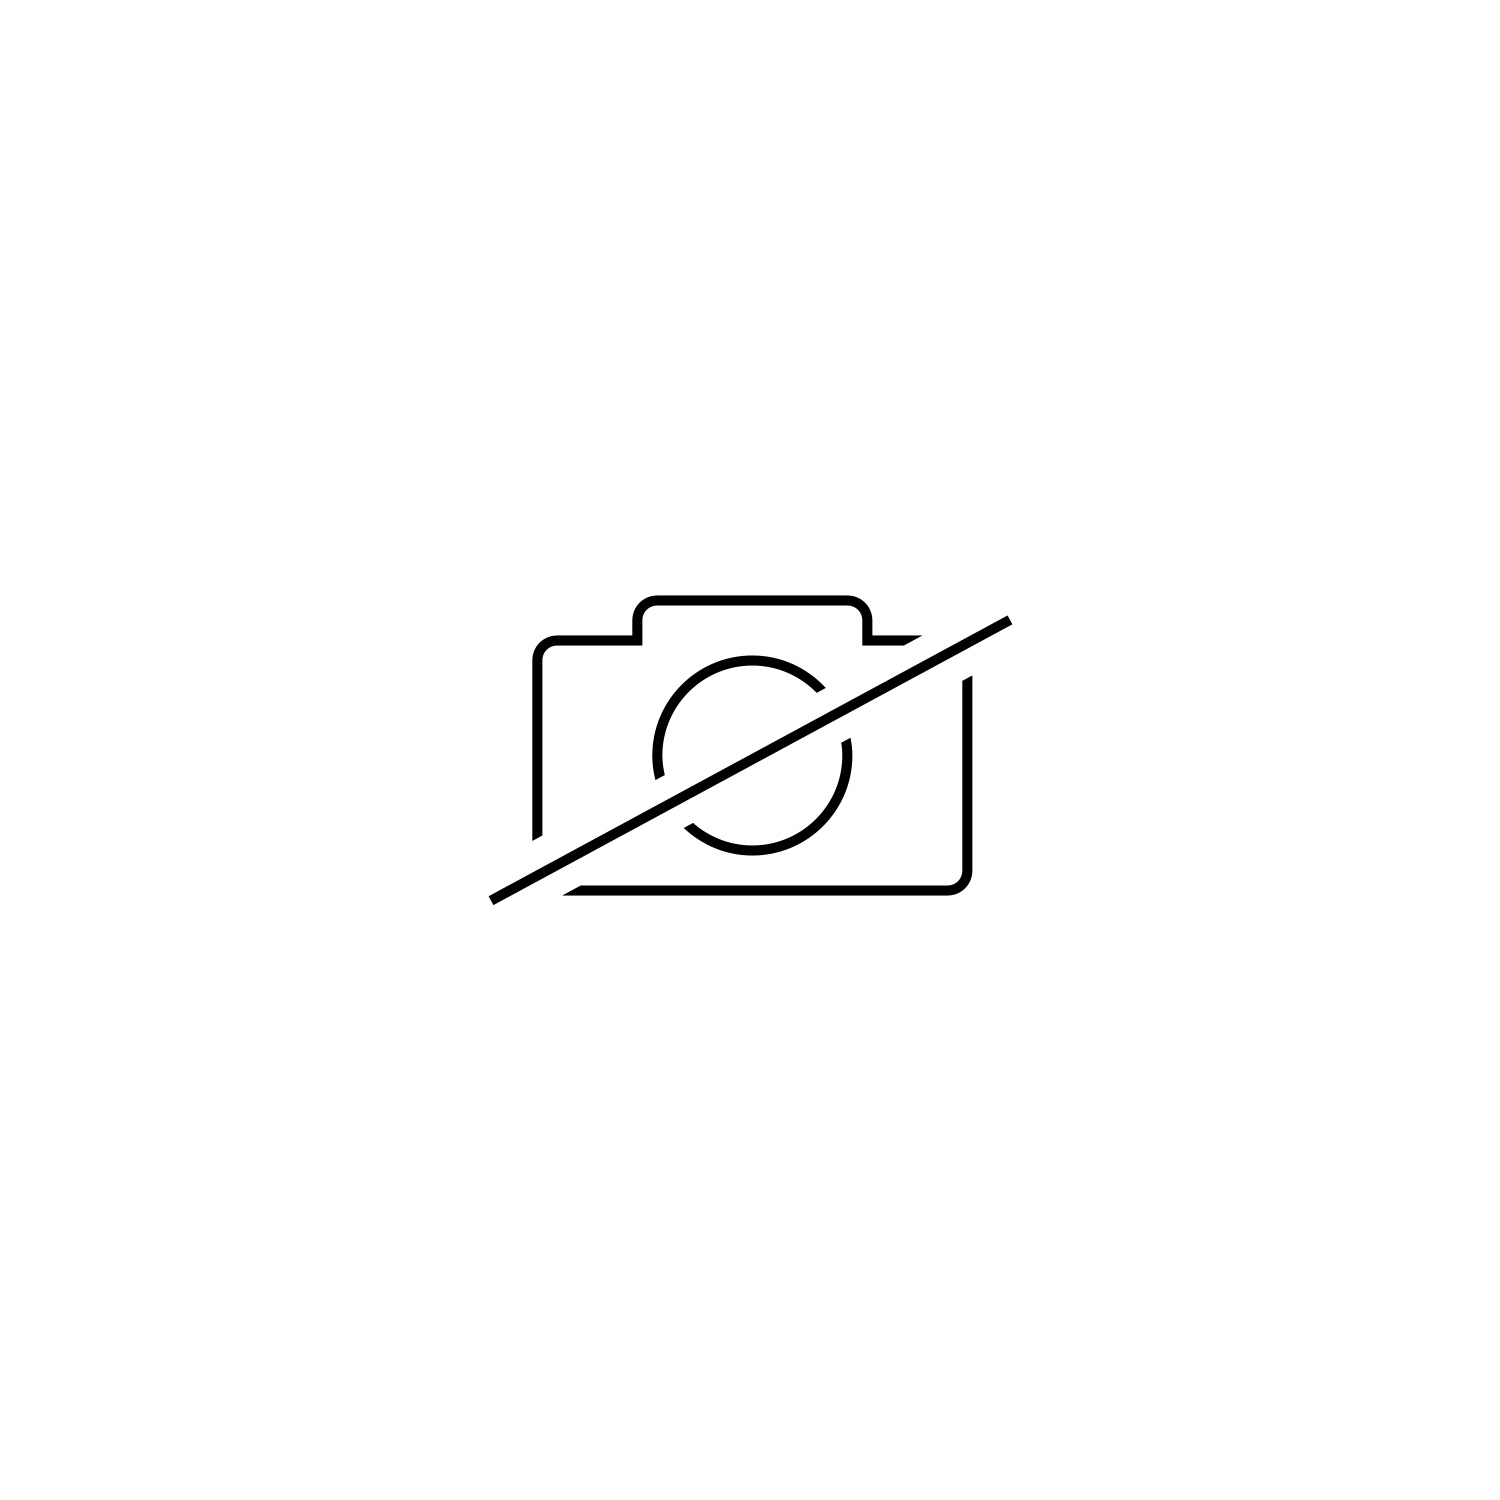 Audi reflective logo jacket e-tron, Mens, Dark grey, XL